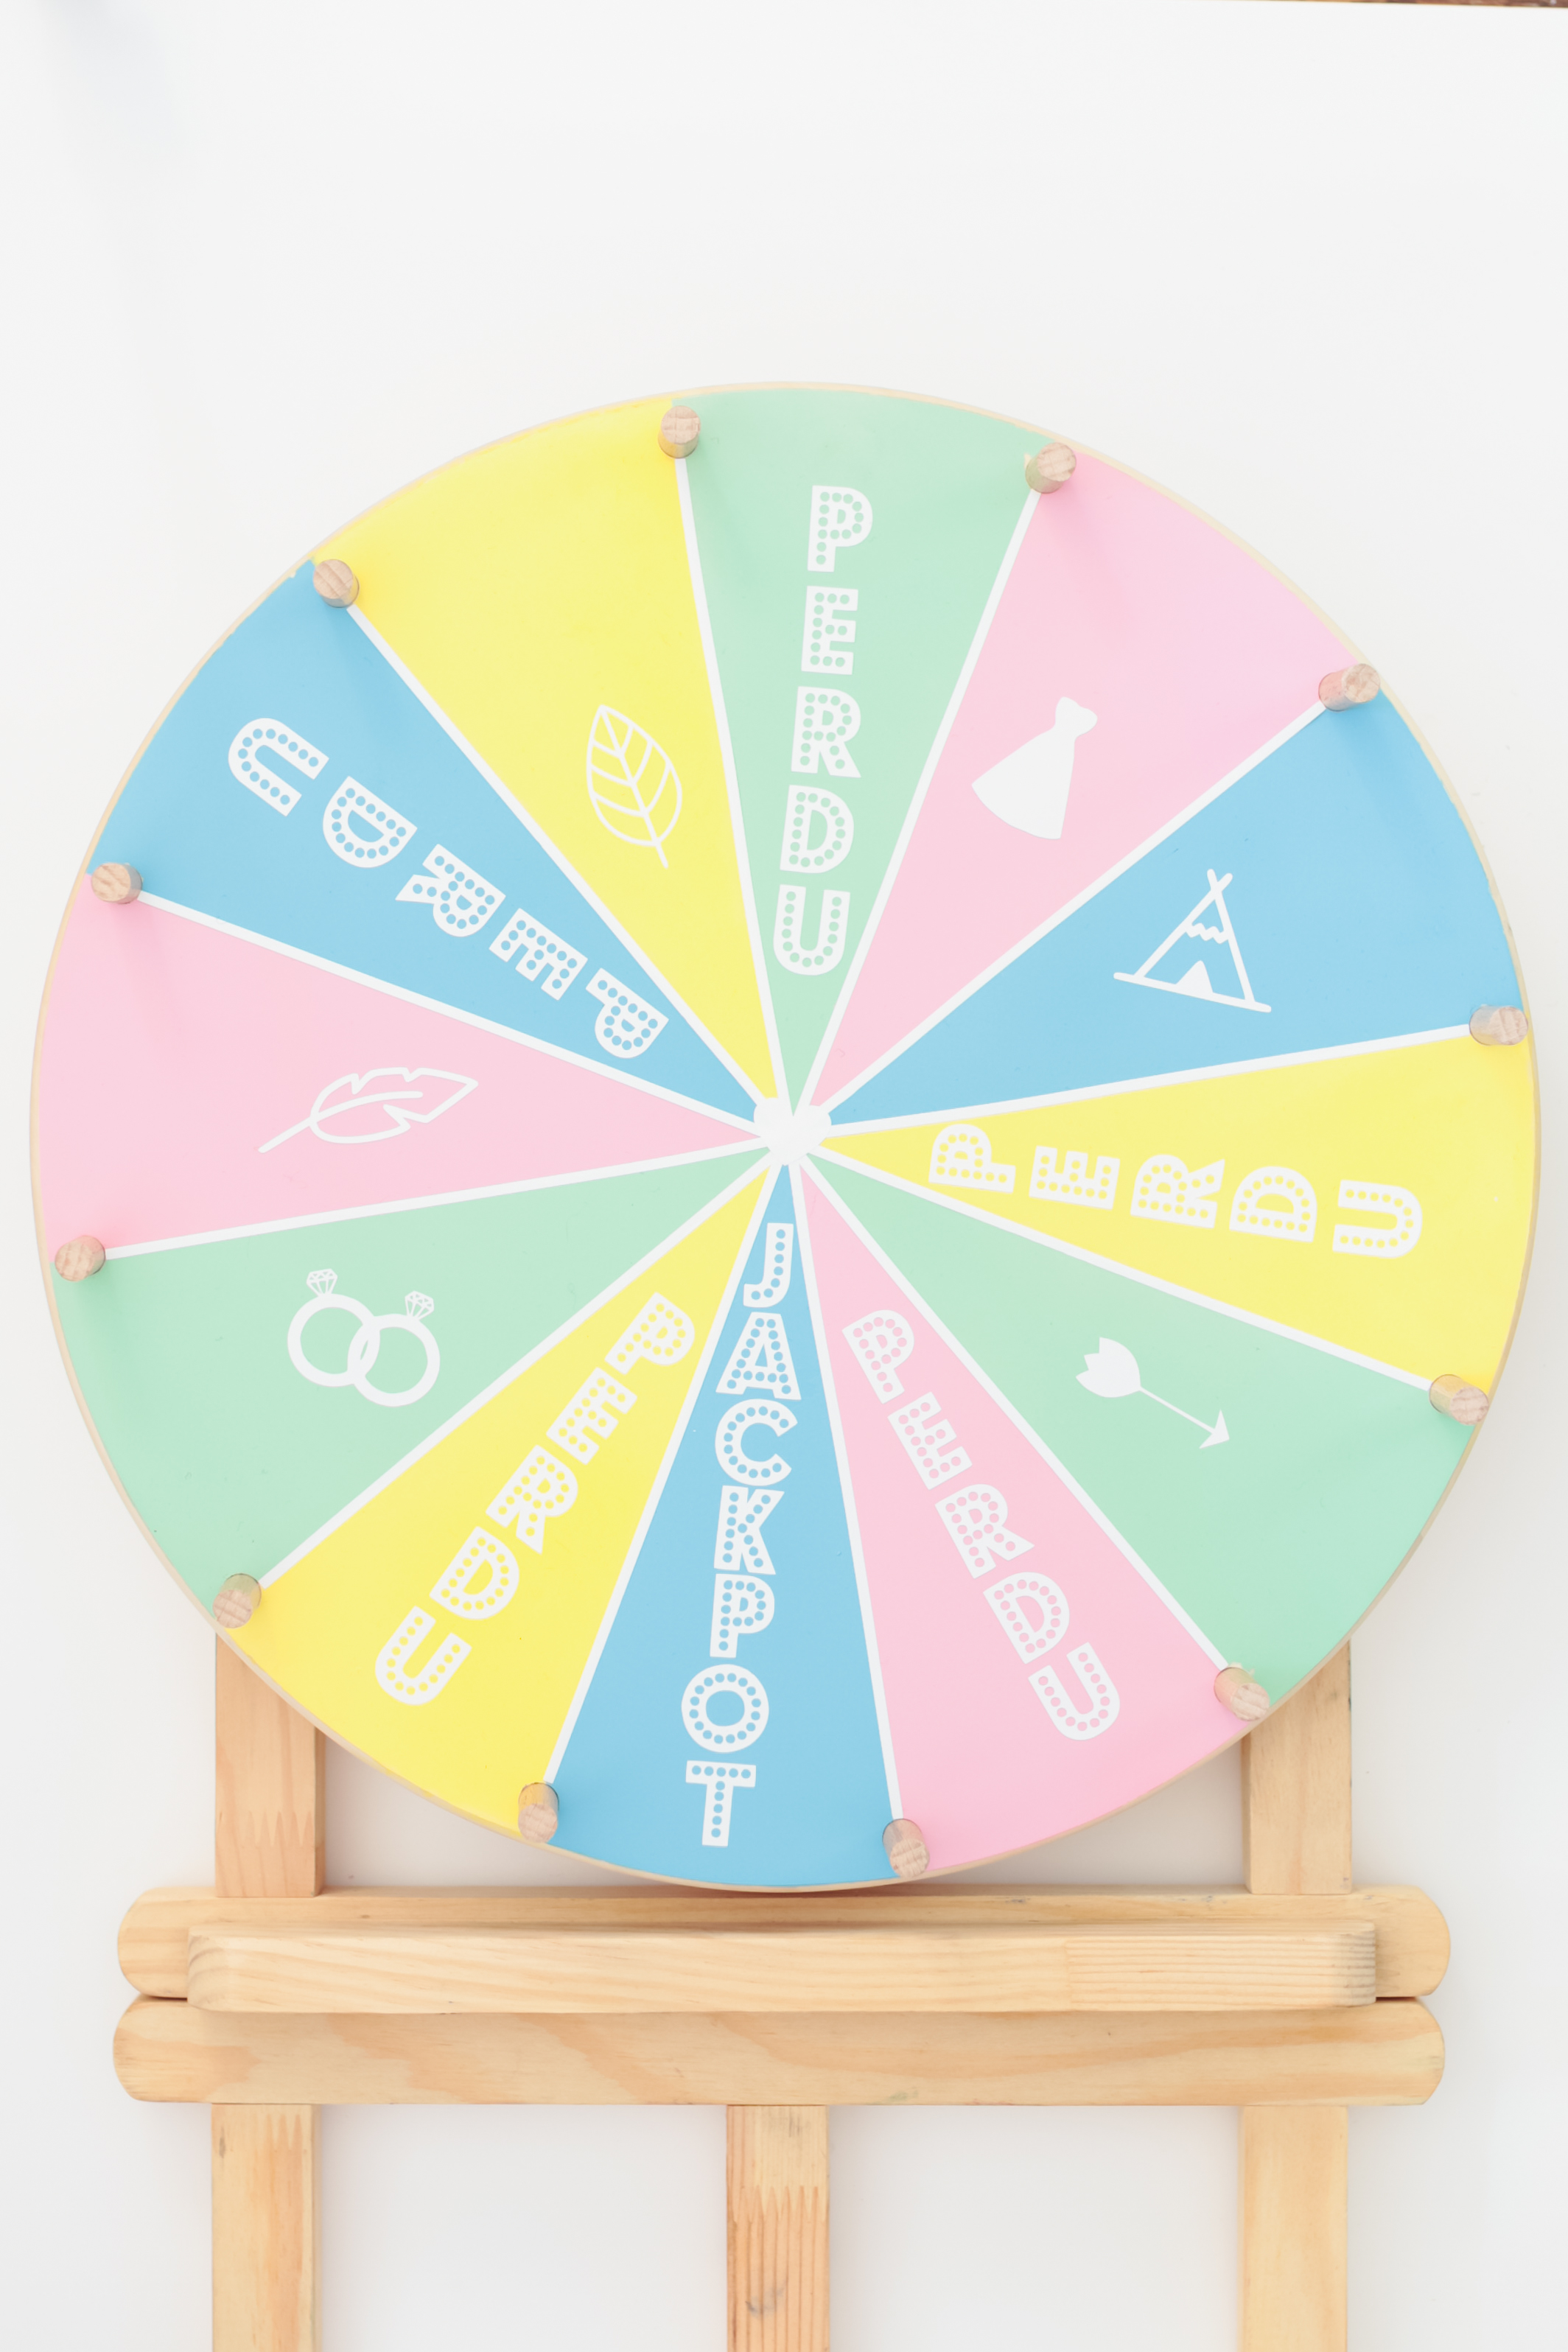 diy-roue-de-la-fortune-wheel-fortune-i-sp4nkblog-22